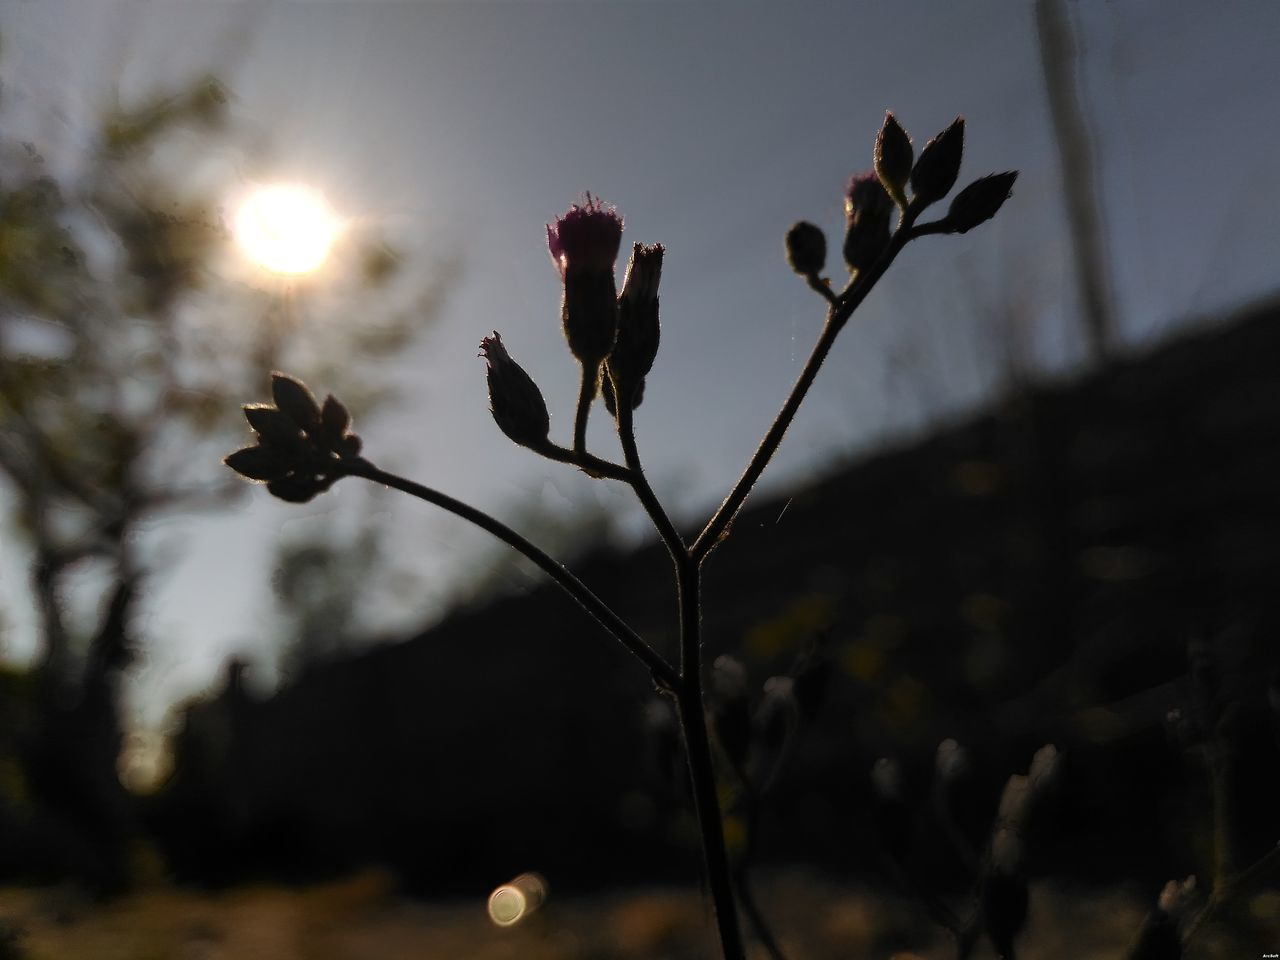 growth, nature, plant, focus on foreground, flower, outdoors, no people, beauty in nature, close-up, fragility, freshness, day